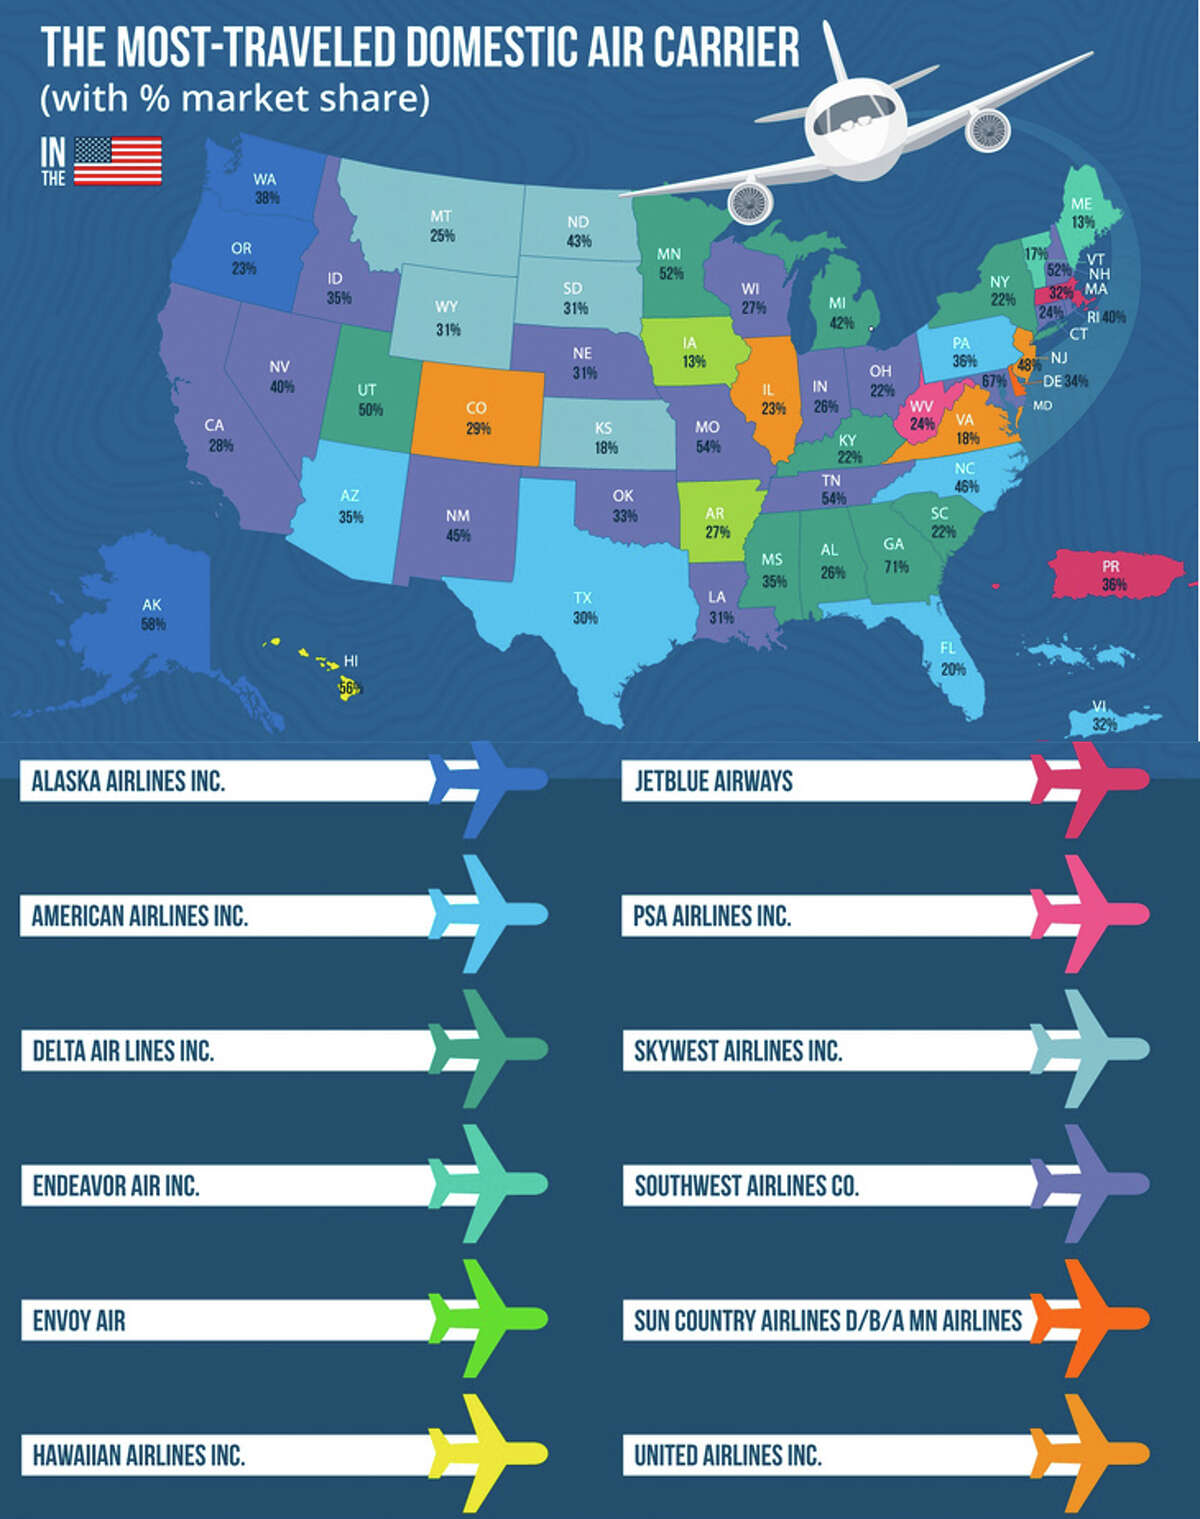 A breakdown of the dominant airline in each state by passenger share.